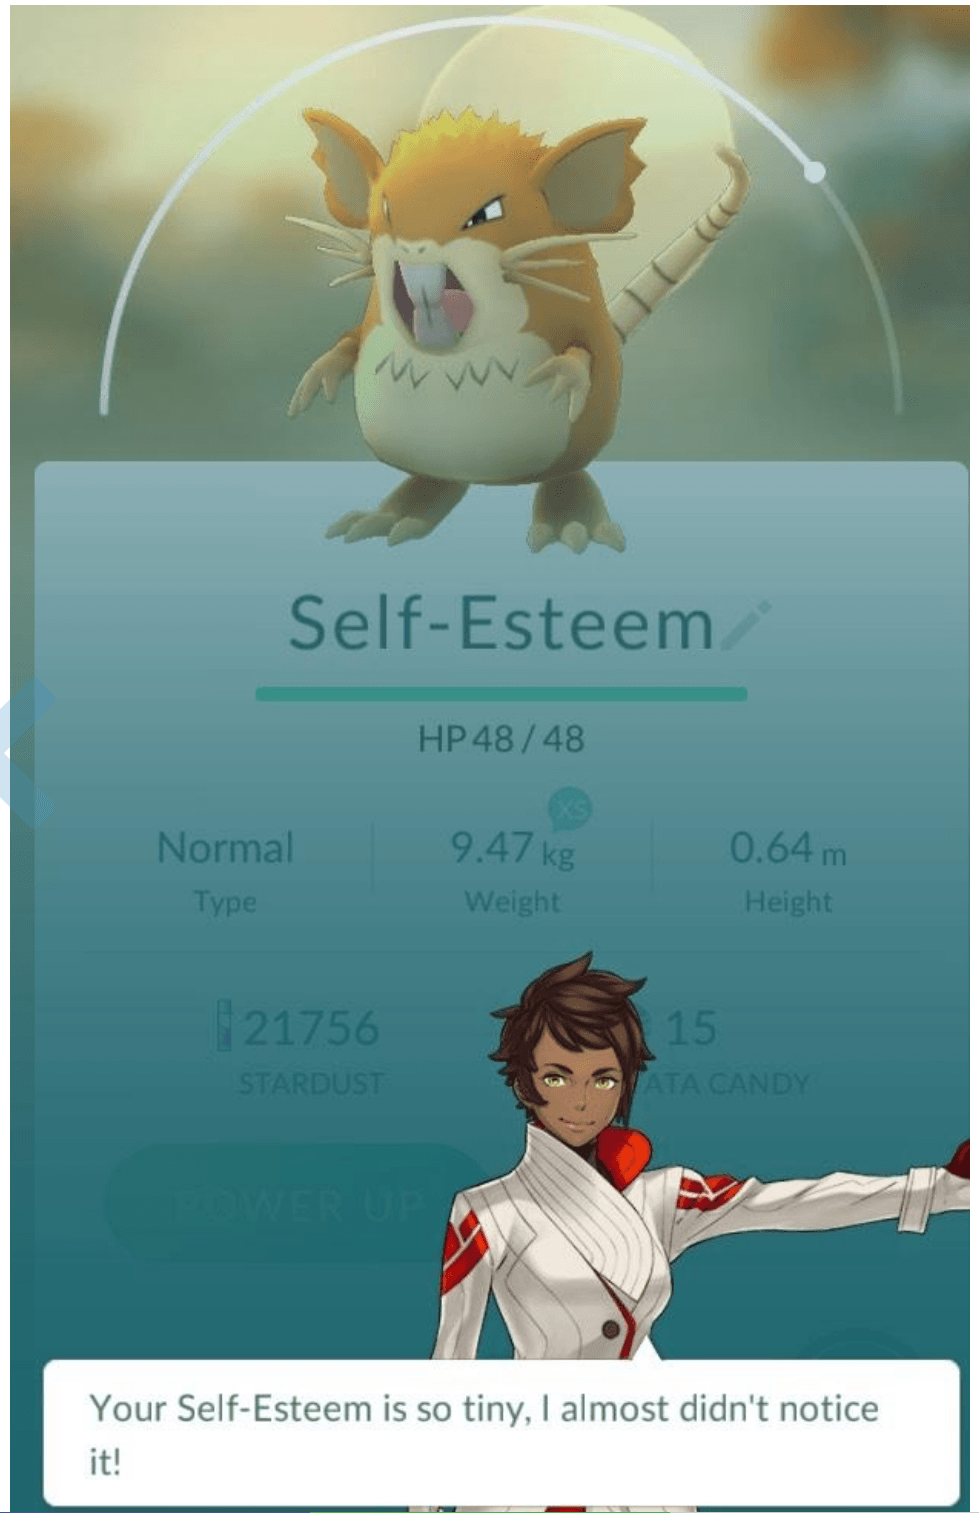 Is Pokémon GO aiming to be competitive?